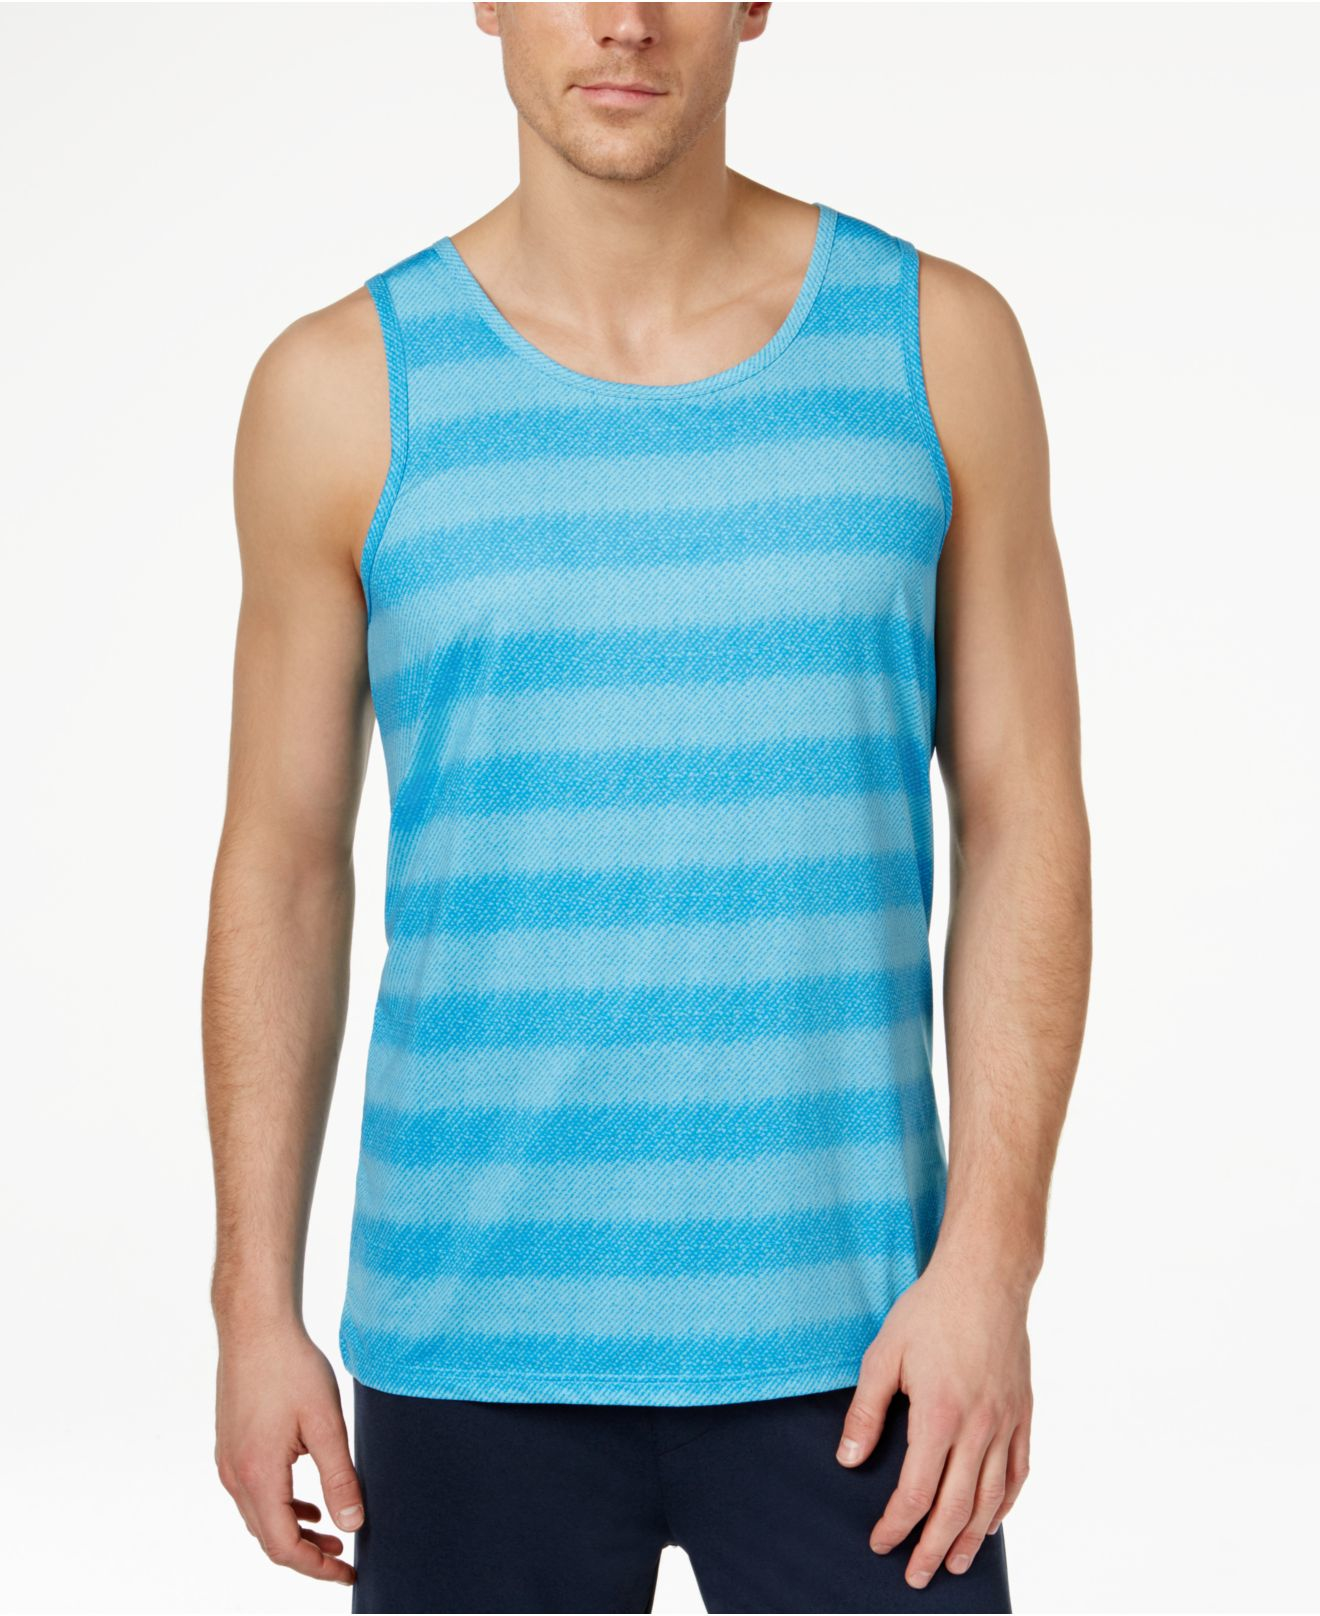 Shop online for Men's Tank Tops at urgut.ga Find graphic designs & pocket tank tops for the gym & beach. Free Shipping. Free Returns. All the time.